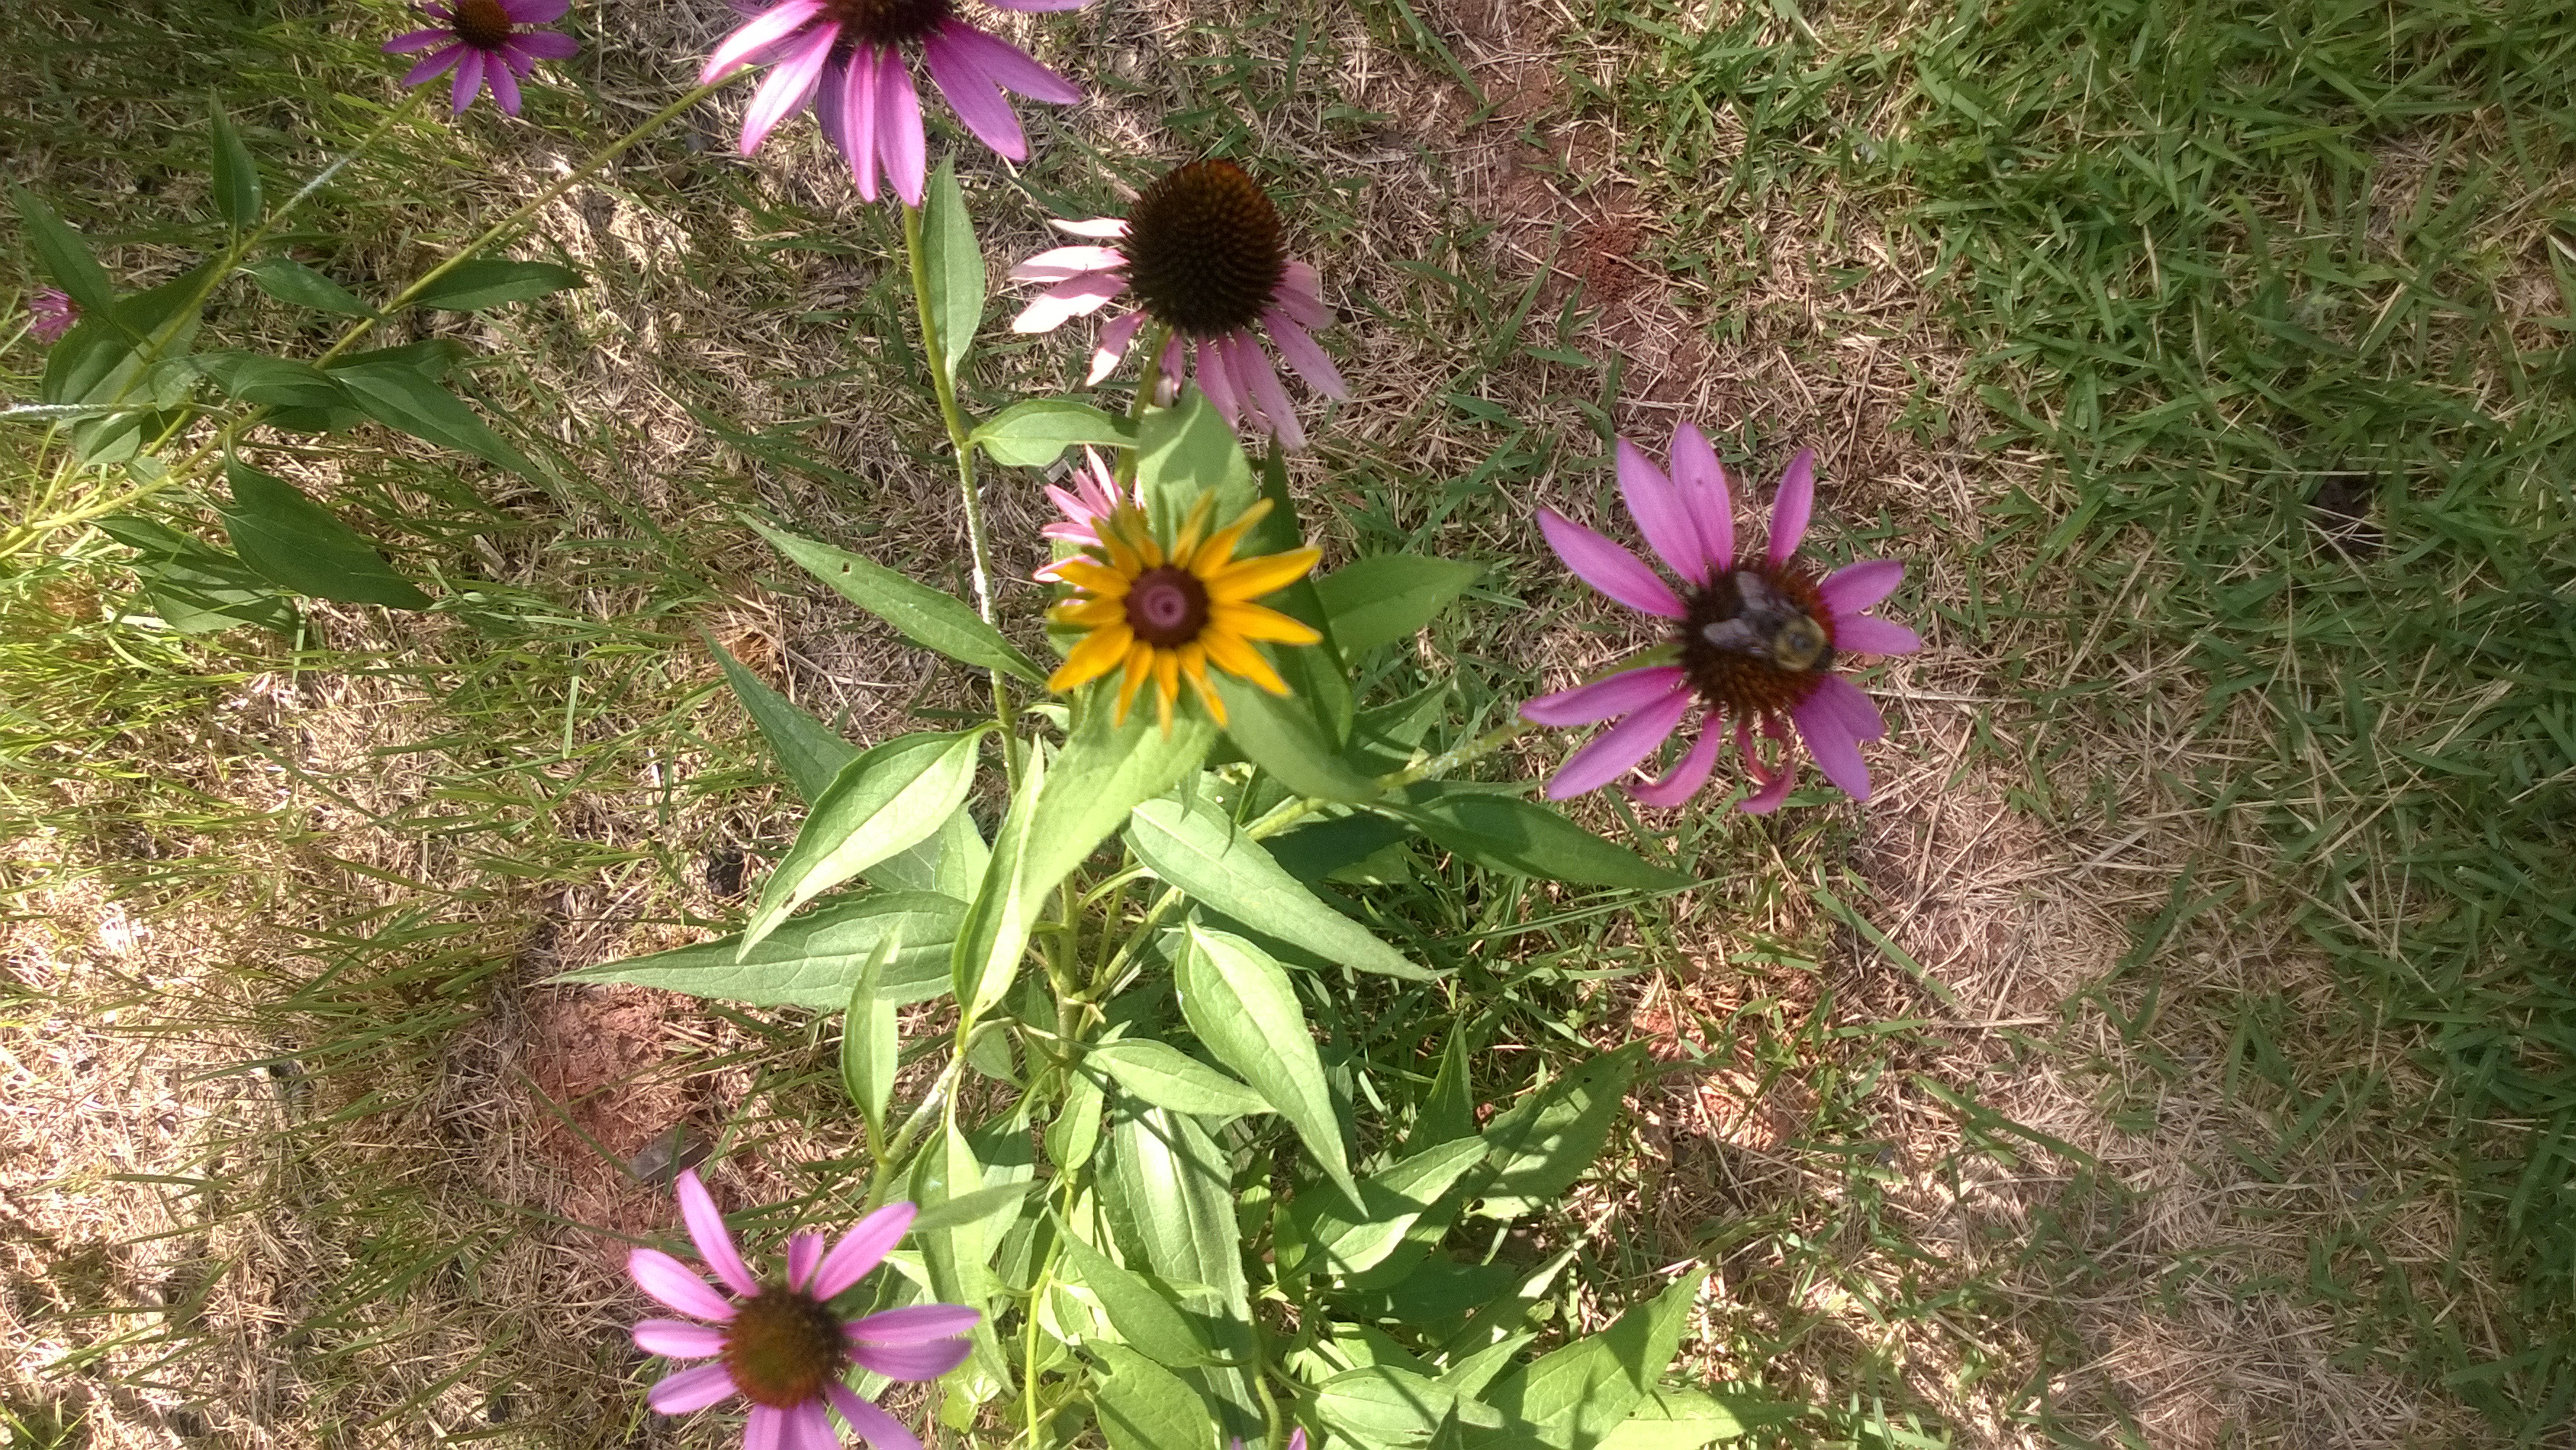 purple coneflowers thrive in dry conditions